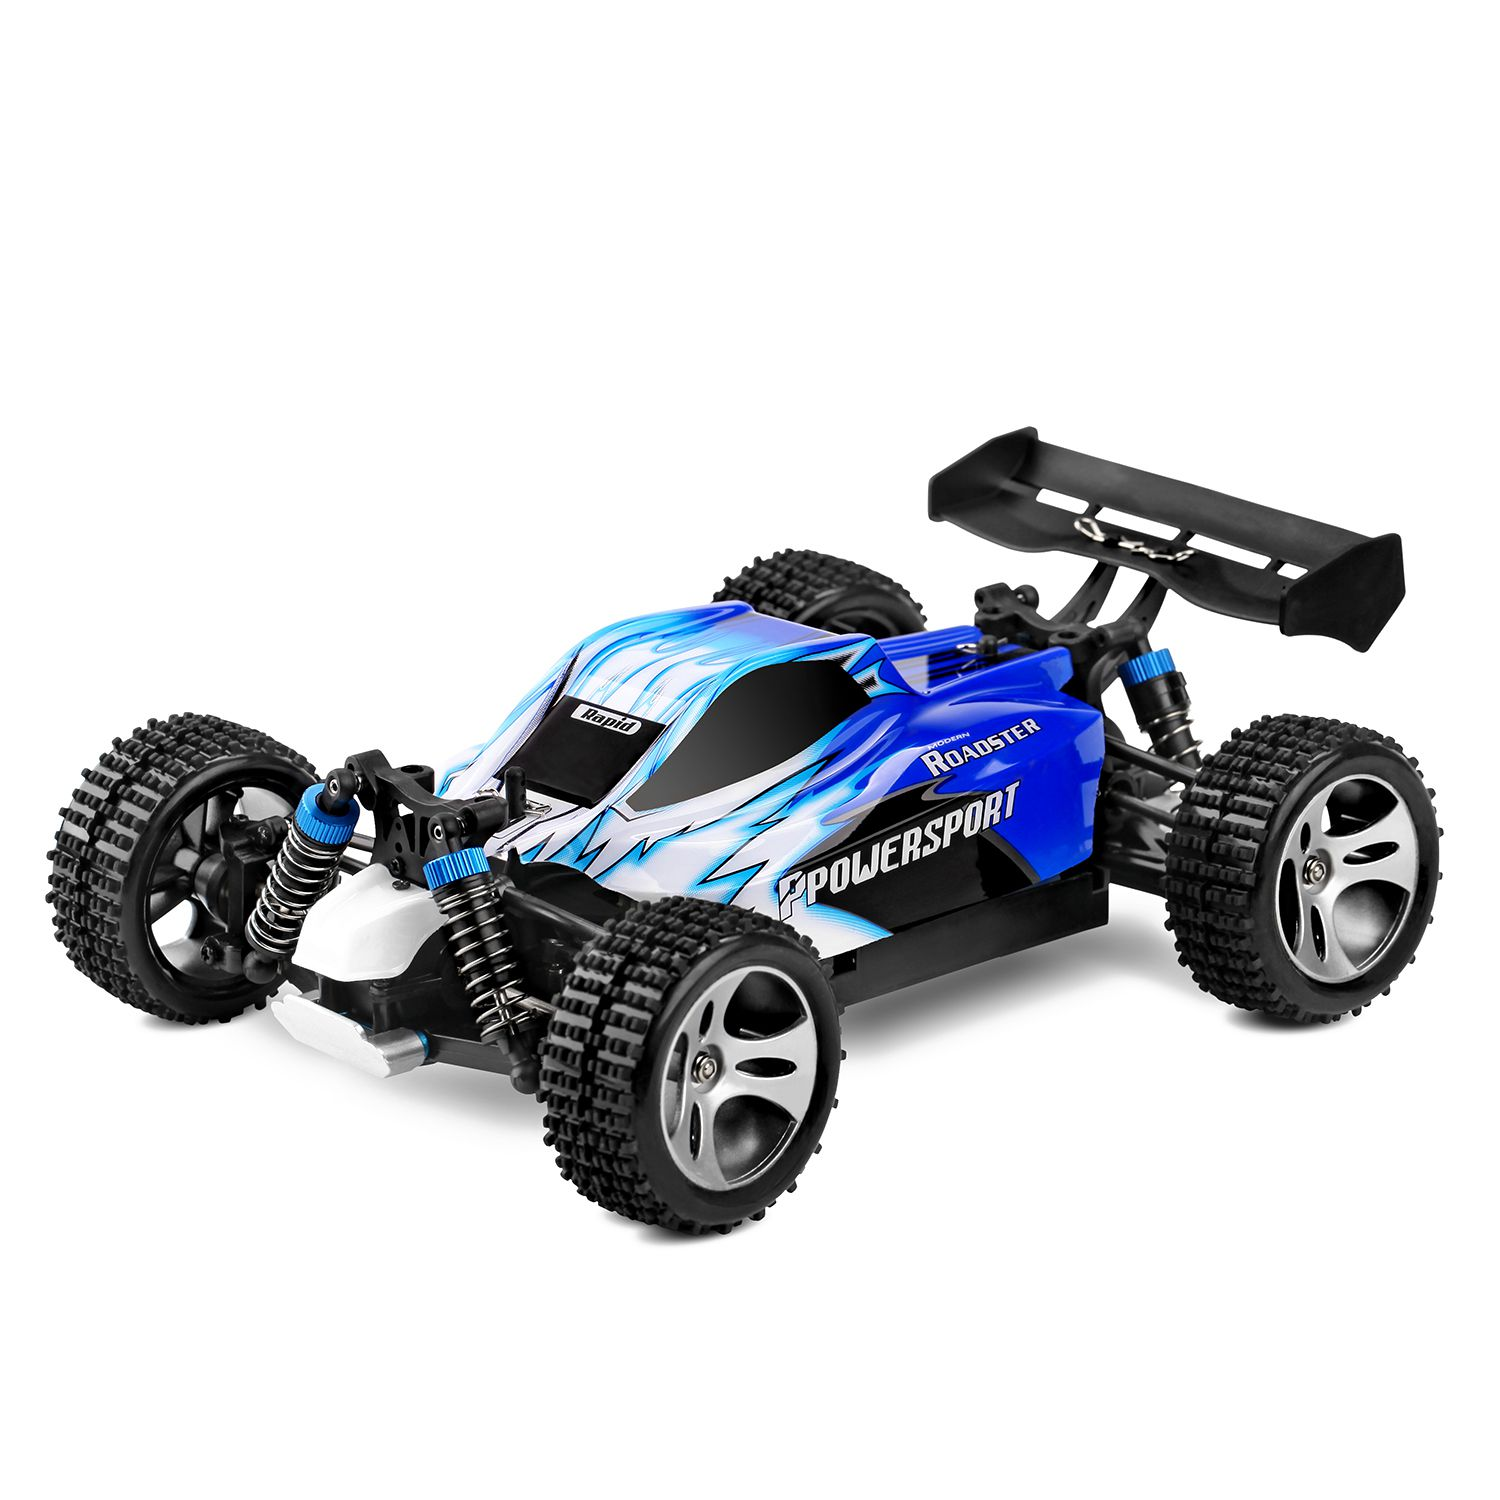 Wltoys A959 1/18 1: 18 Scale 2.4G 4WD RTR Off-Road Buggy RC Car for Gift Toys, EU Plug free shipping wltoys a232 1 24 2 4g electric brushed 4wd rtr rc car off road buggy xmas gifts rc toys kid s toys gift